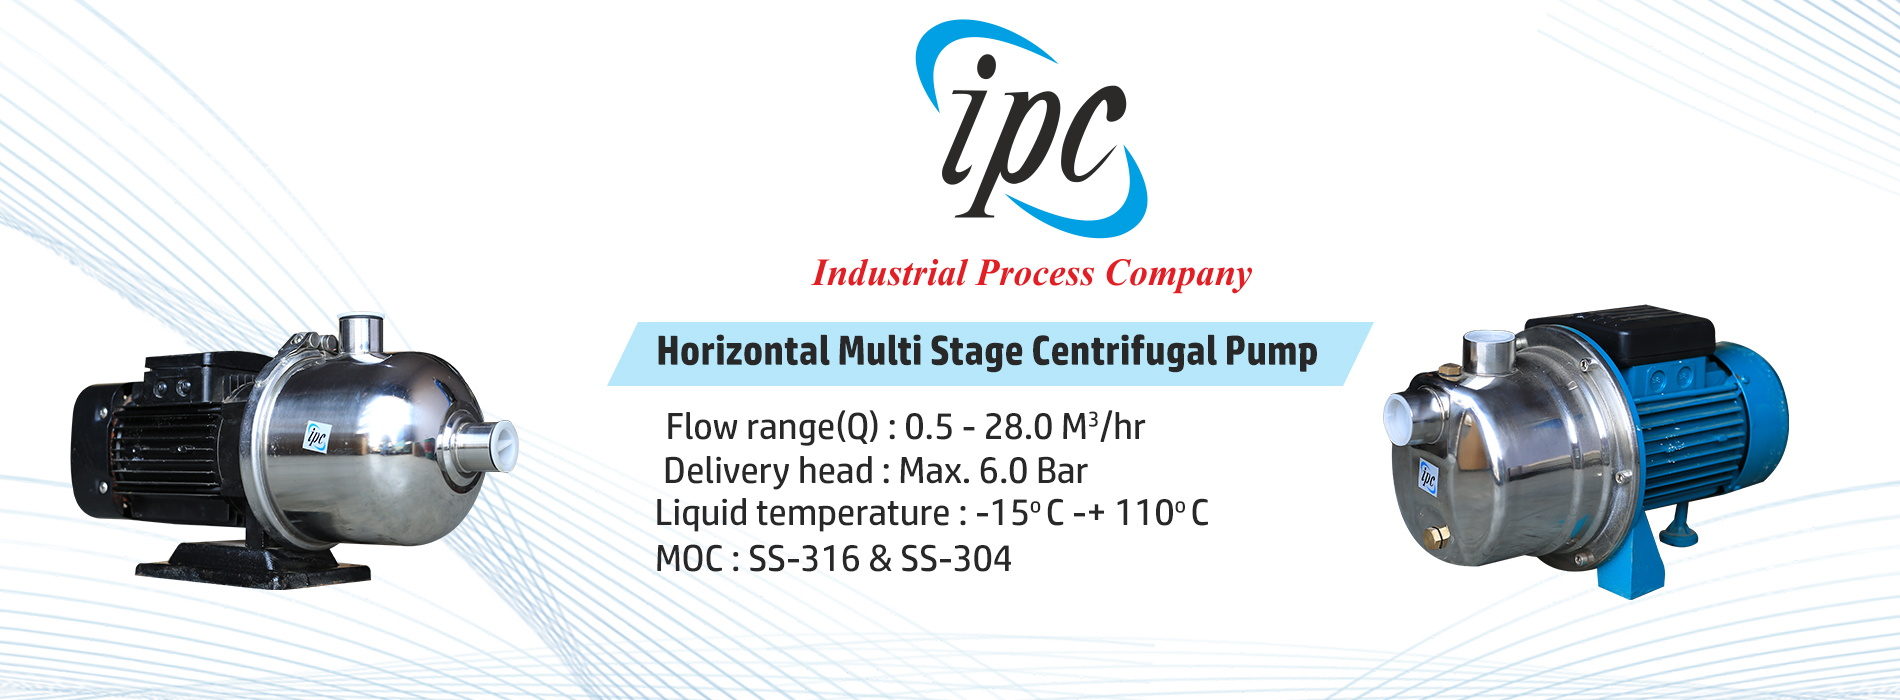 Industrial Process Company